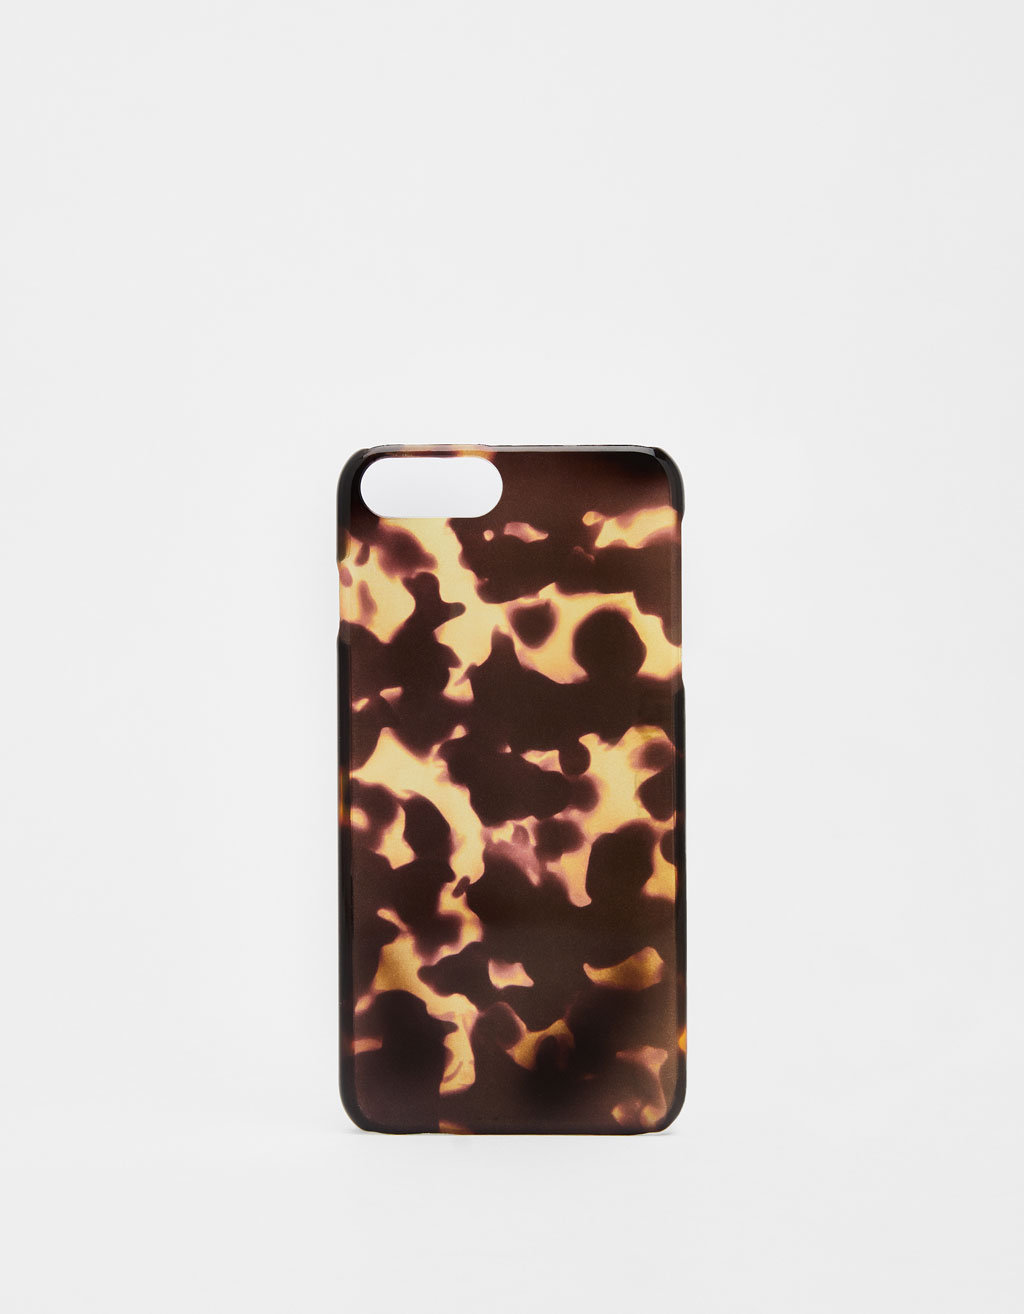 Cover iPhone 6 plus / 7 plus / 8 plus effetto tartarugato